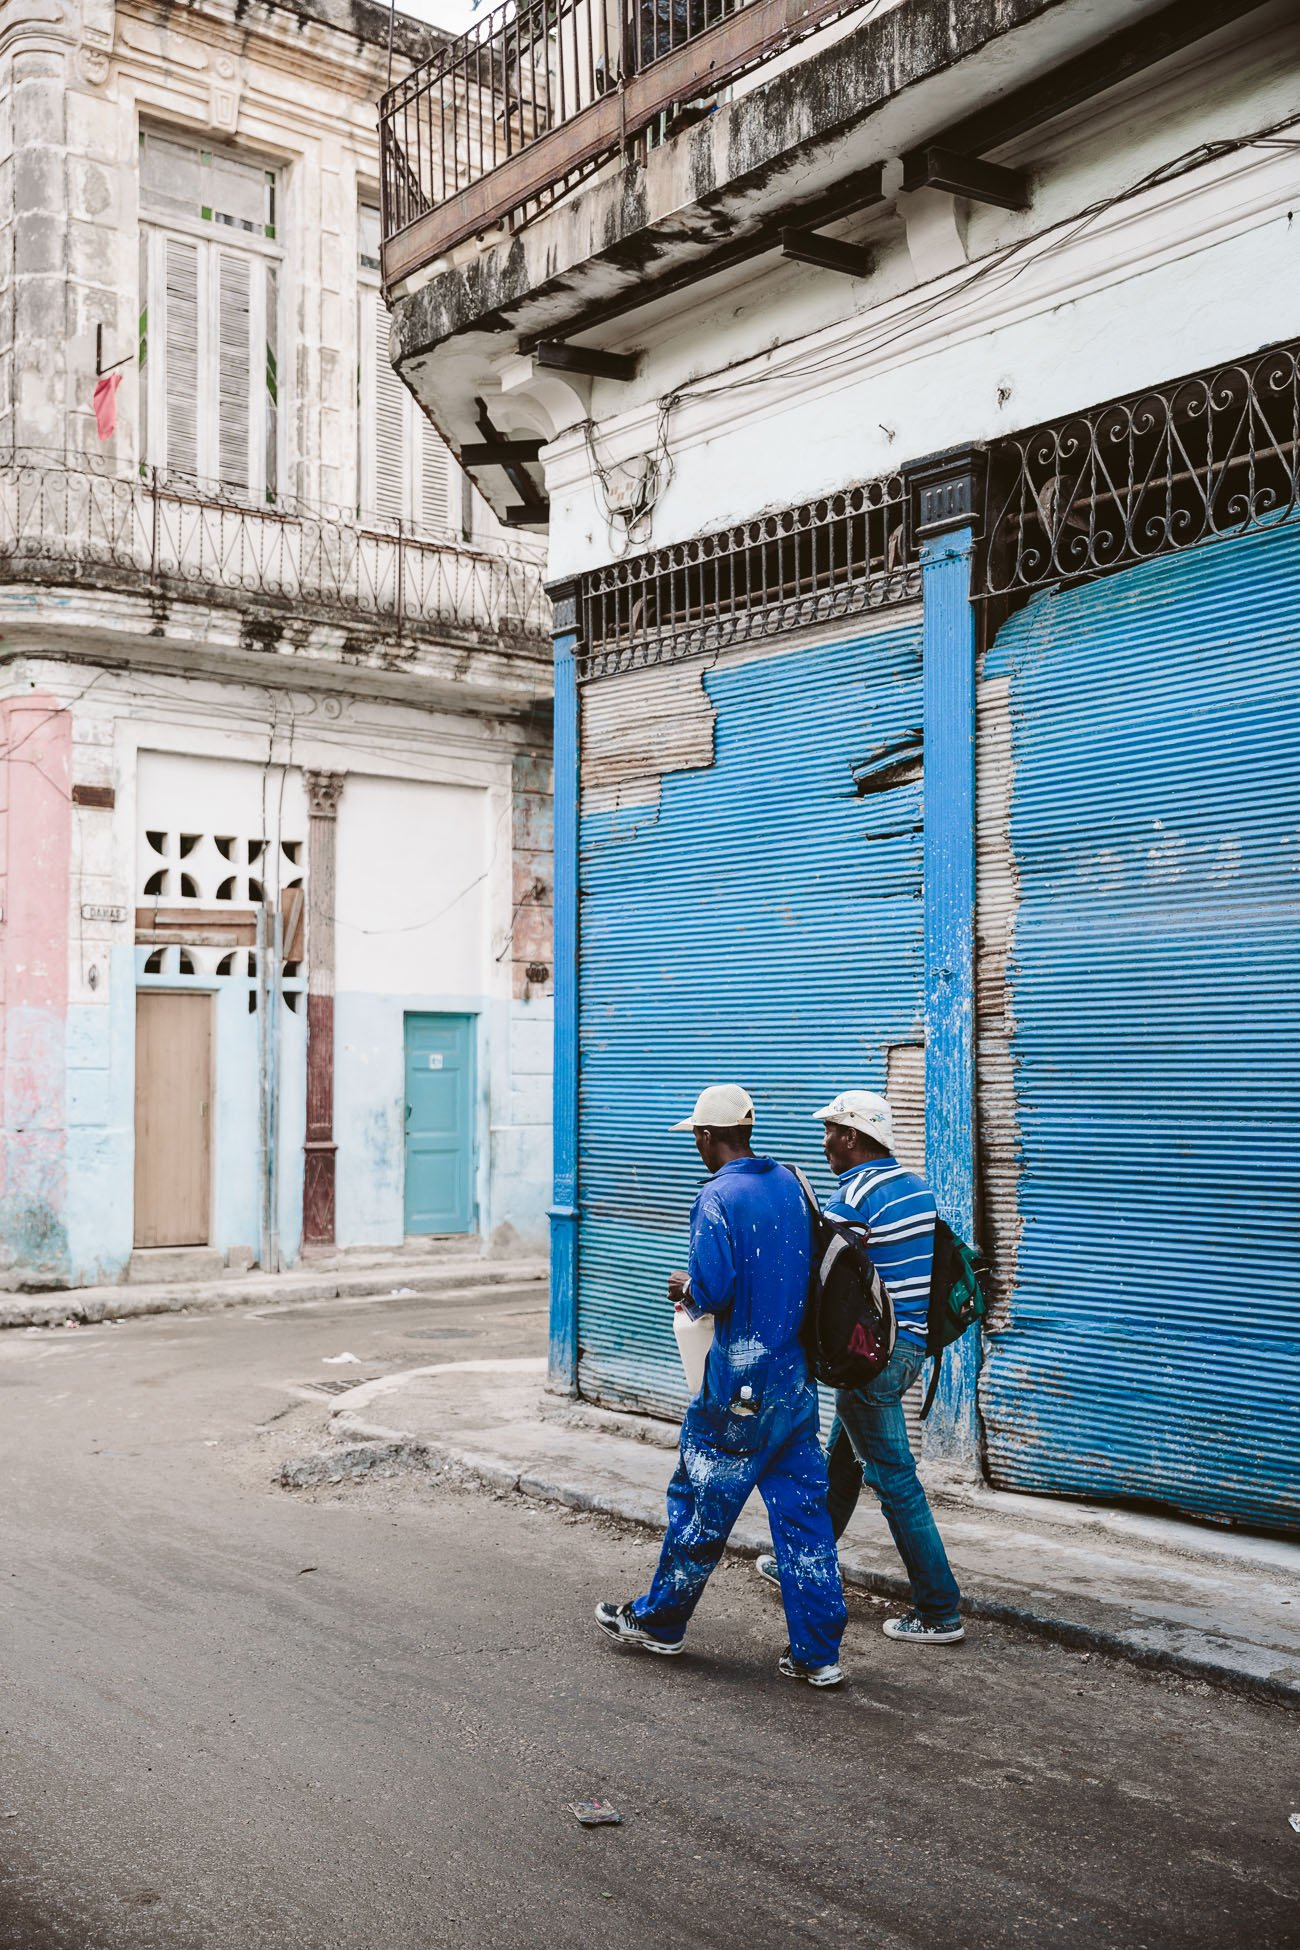 Workers dressed in blue walk by a blue door in Havana Cuba